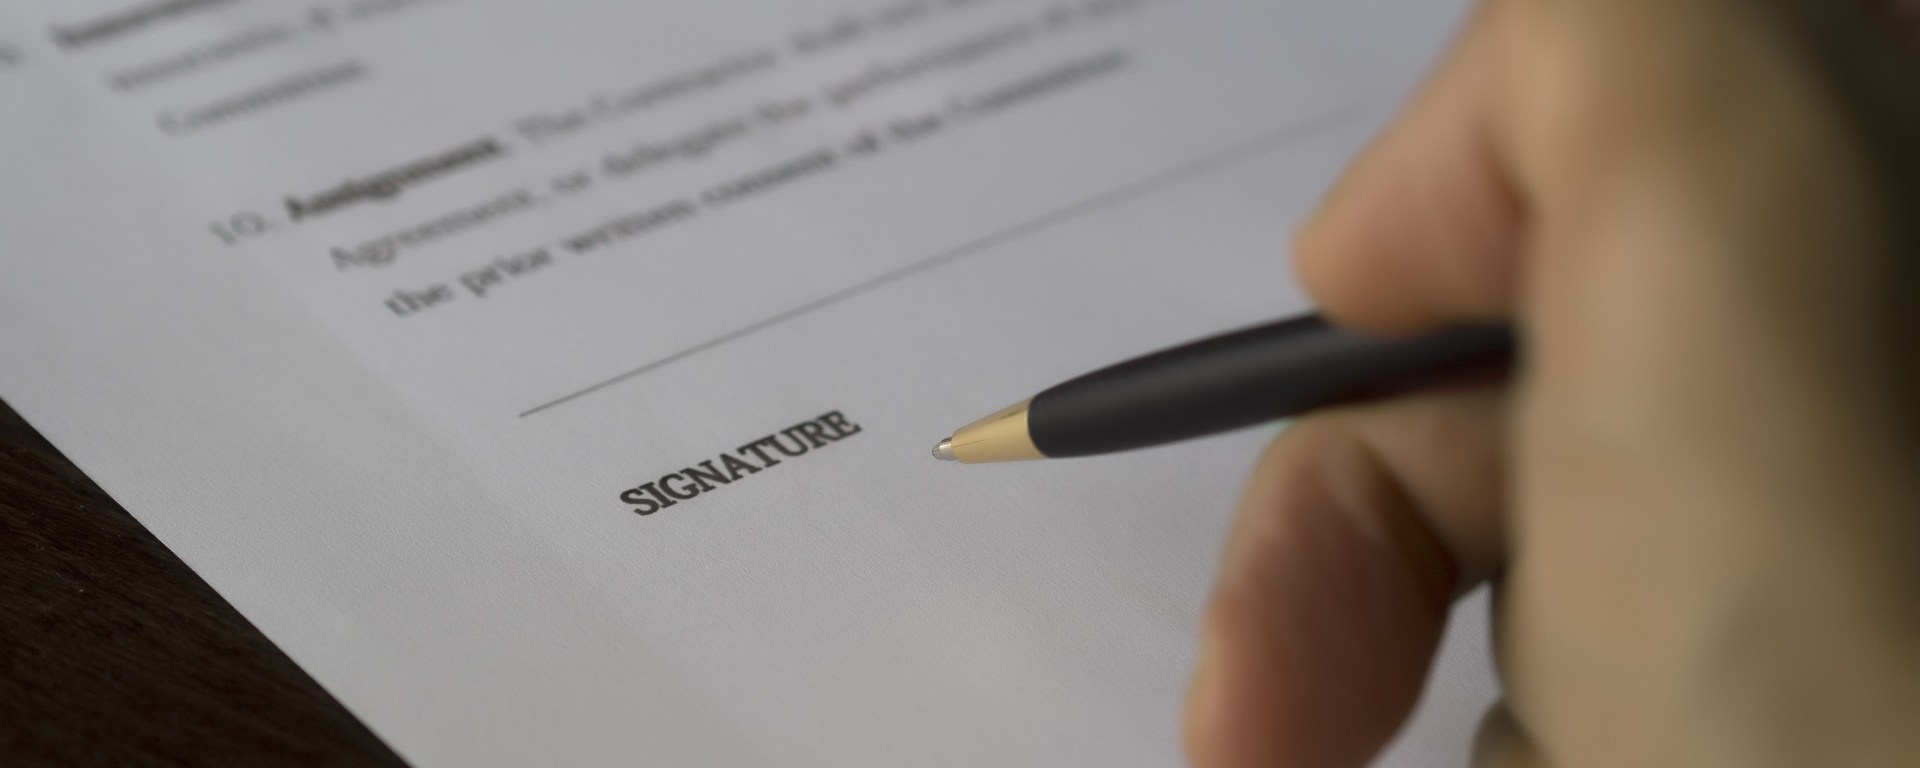 A hand holding a pen next to the signature line on a document.